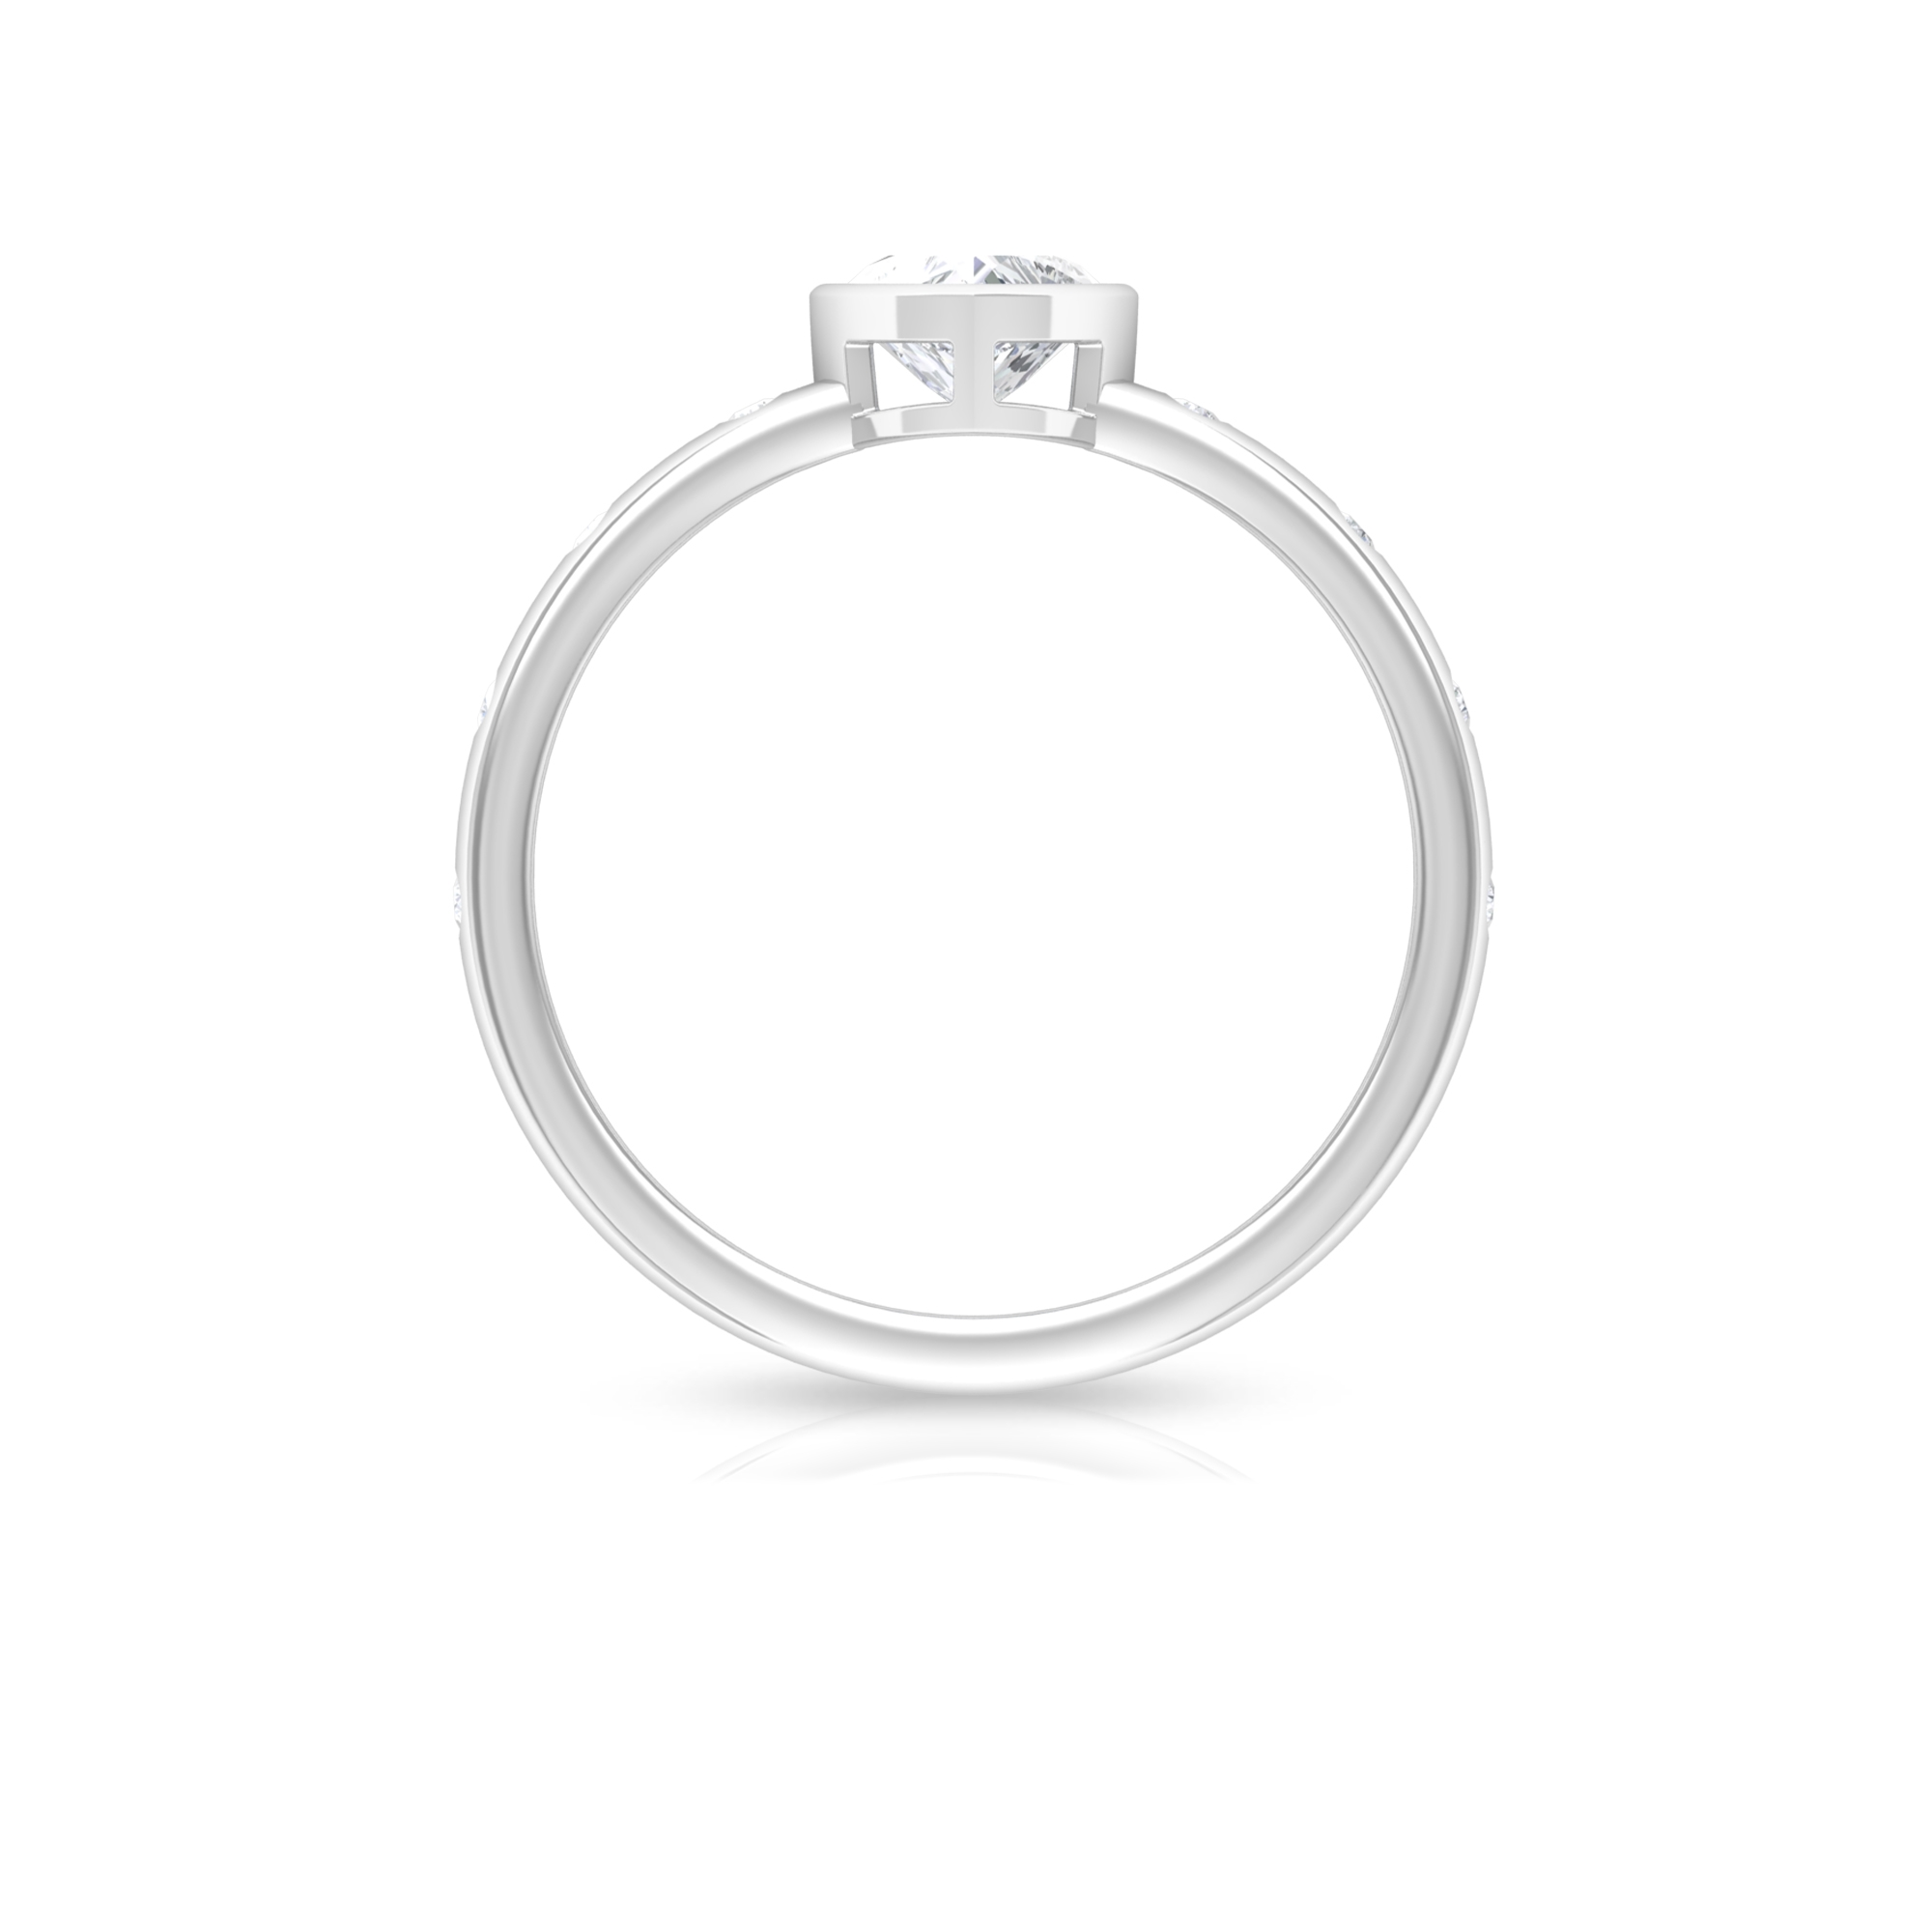 1/2 CT Heart Shape Diamond Solitaire Ring in Bezel Setting with Sleek Accent